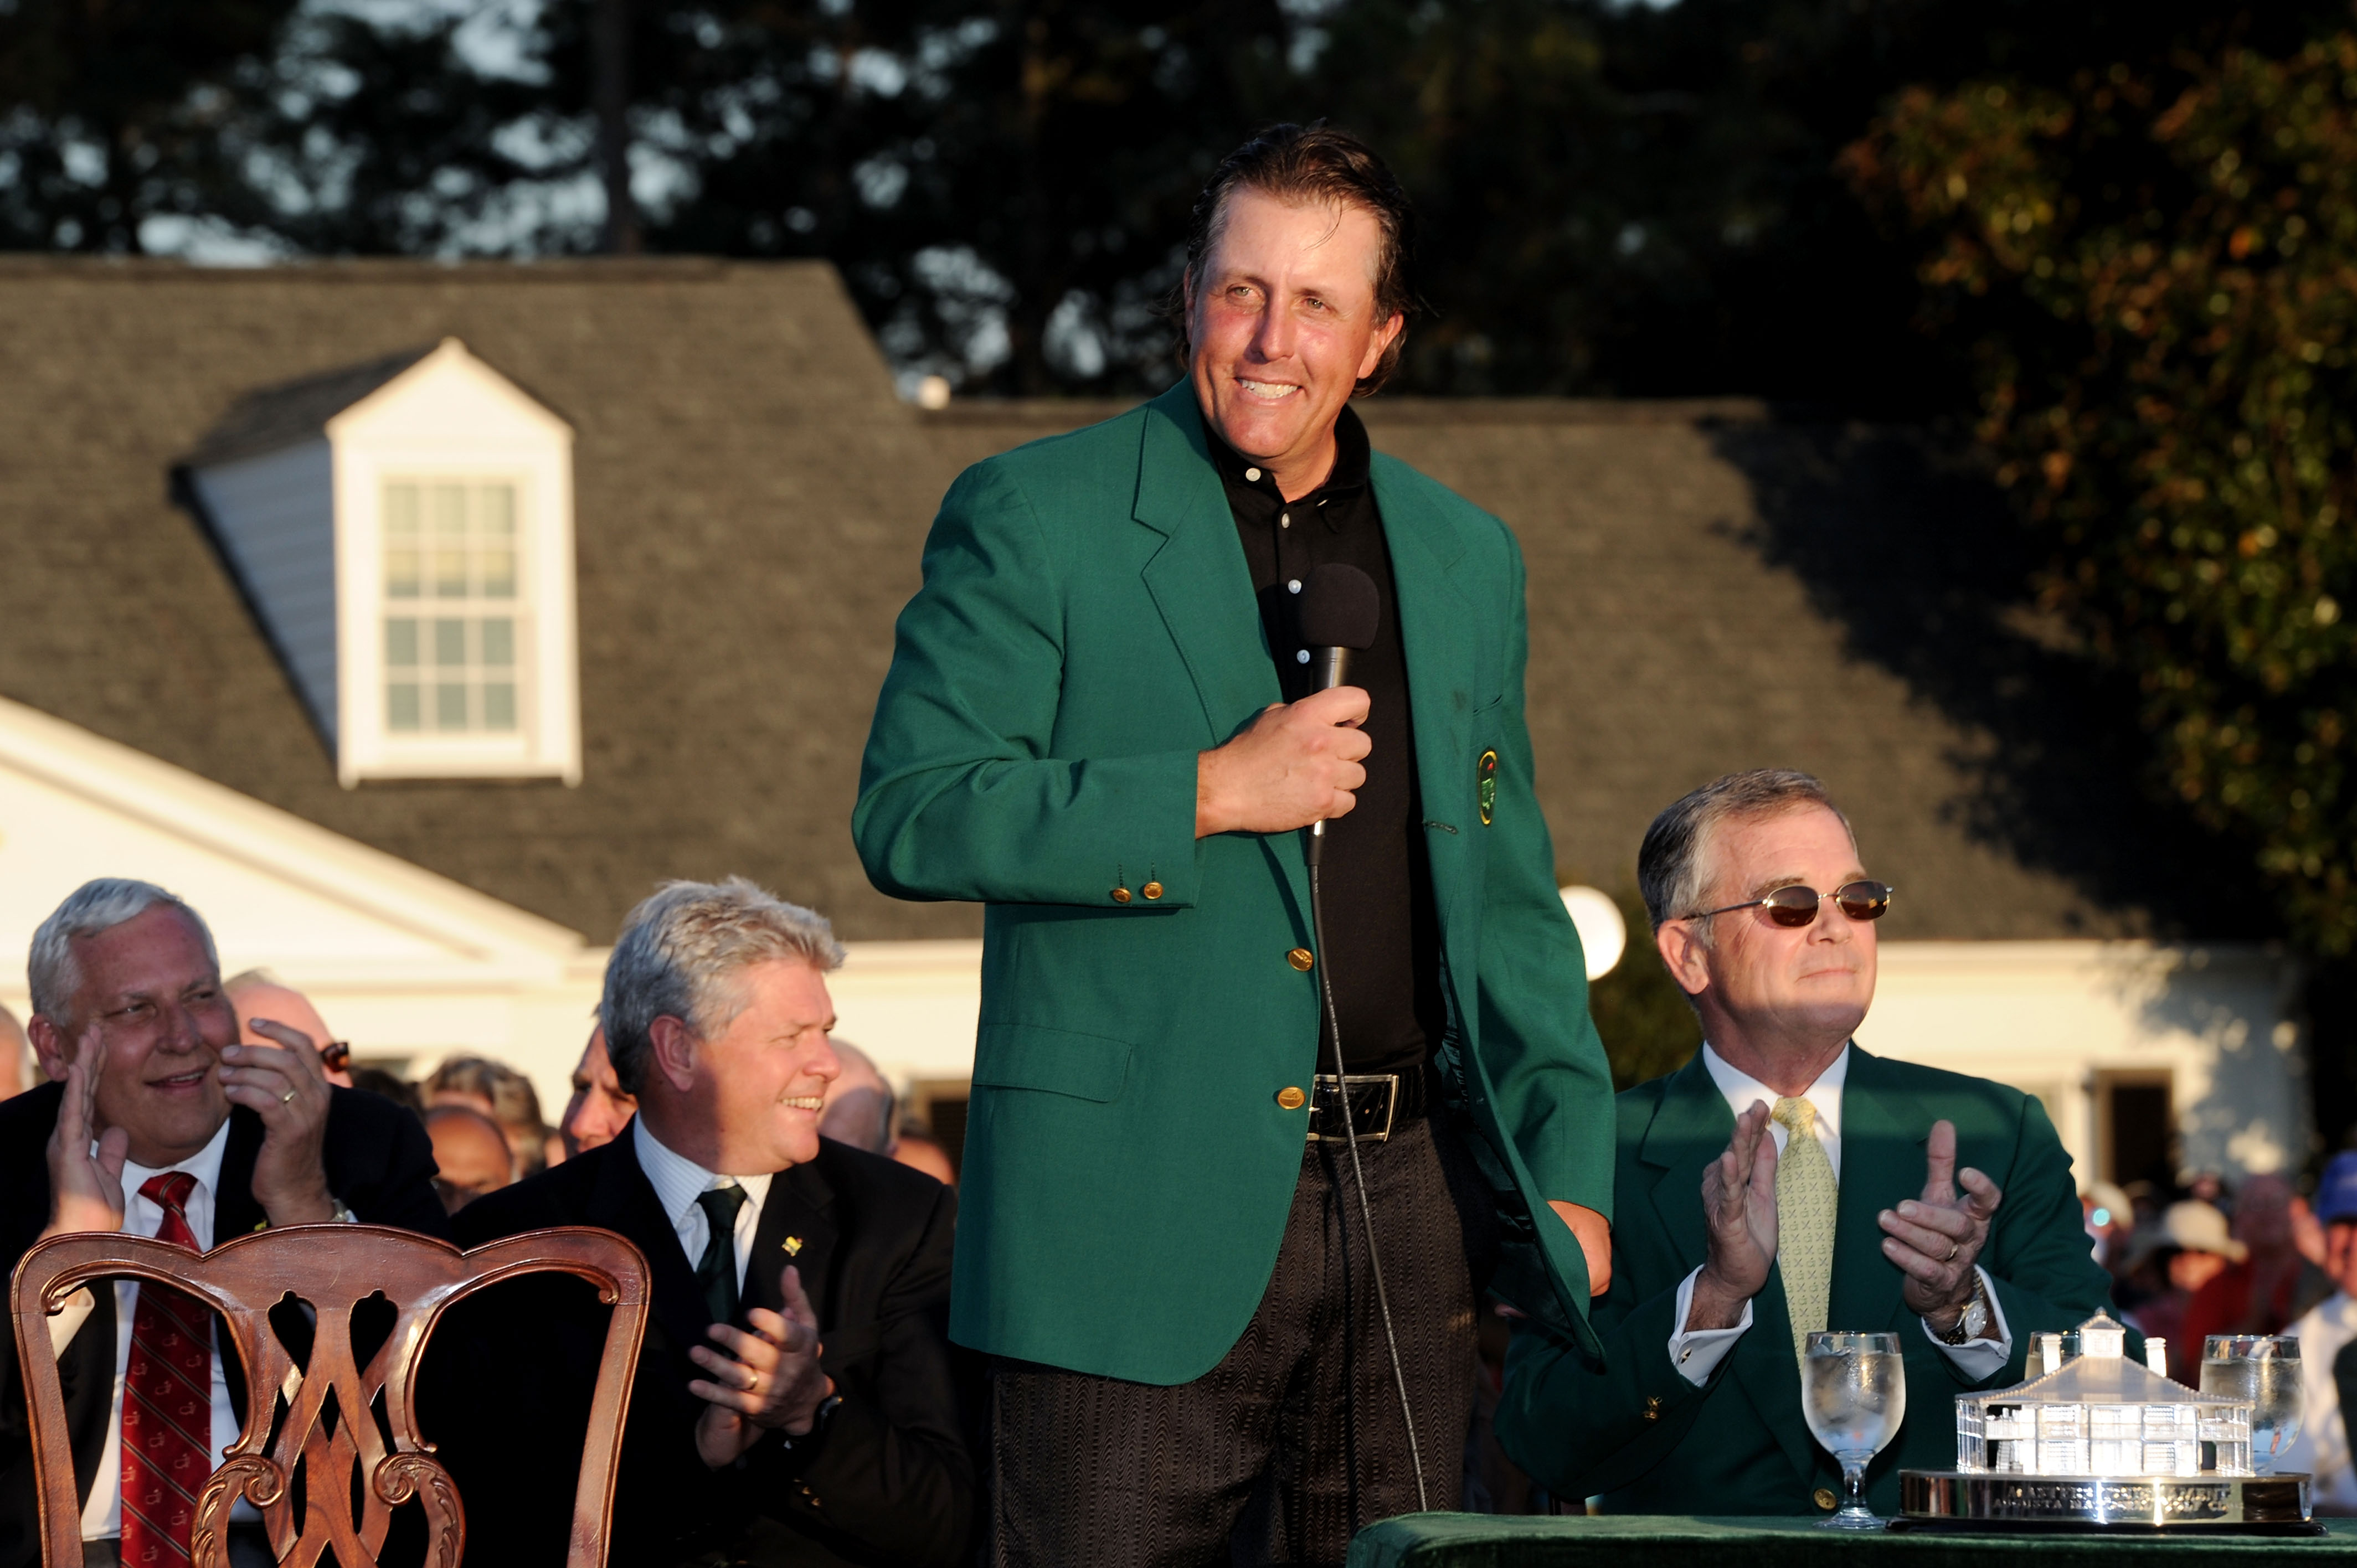 Phil Mickelson winning the 2017 Masters would tie him with Tiger Woods and Arnold Palmer for second-most Masters victories with four.